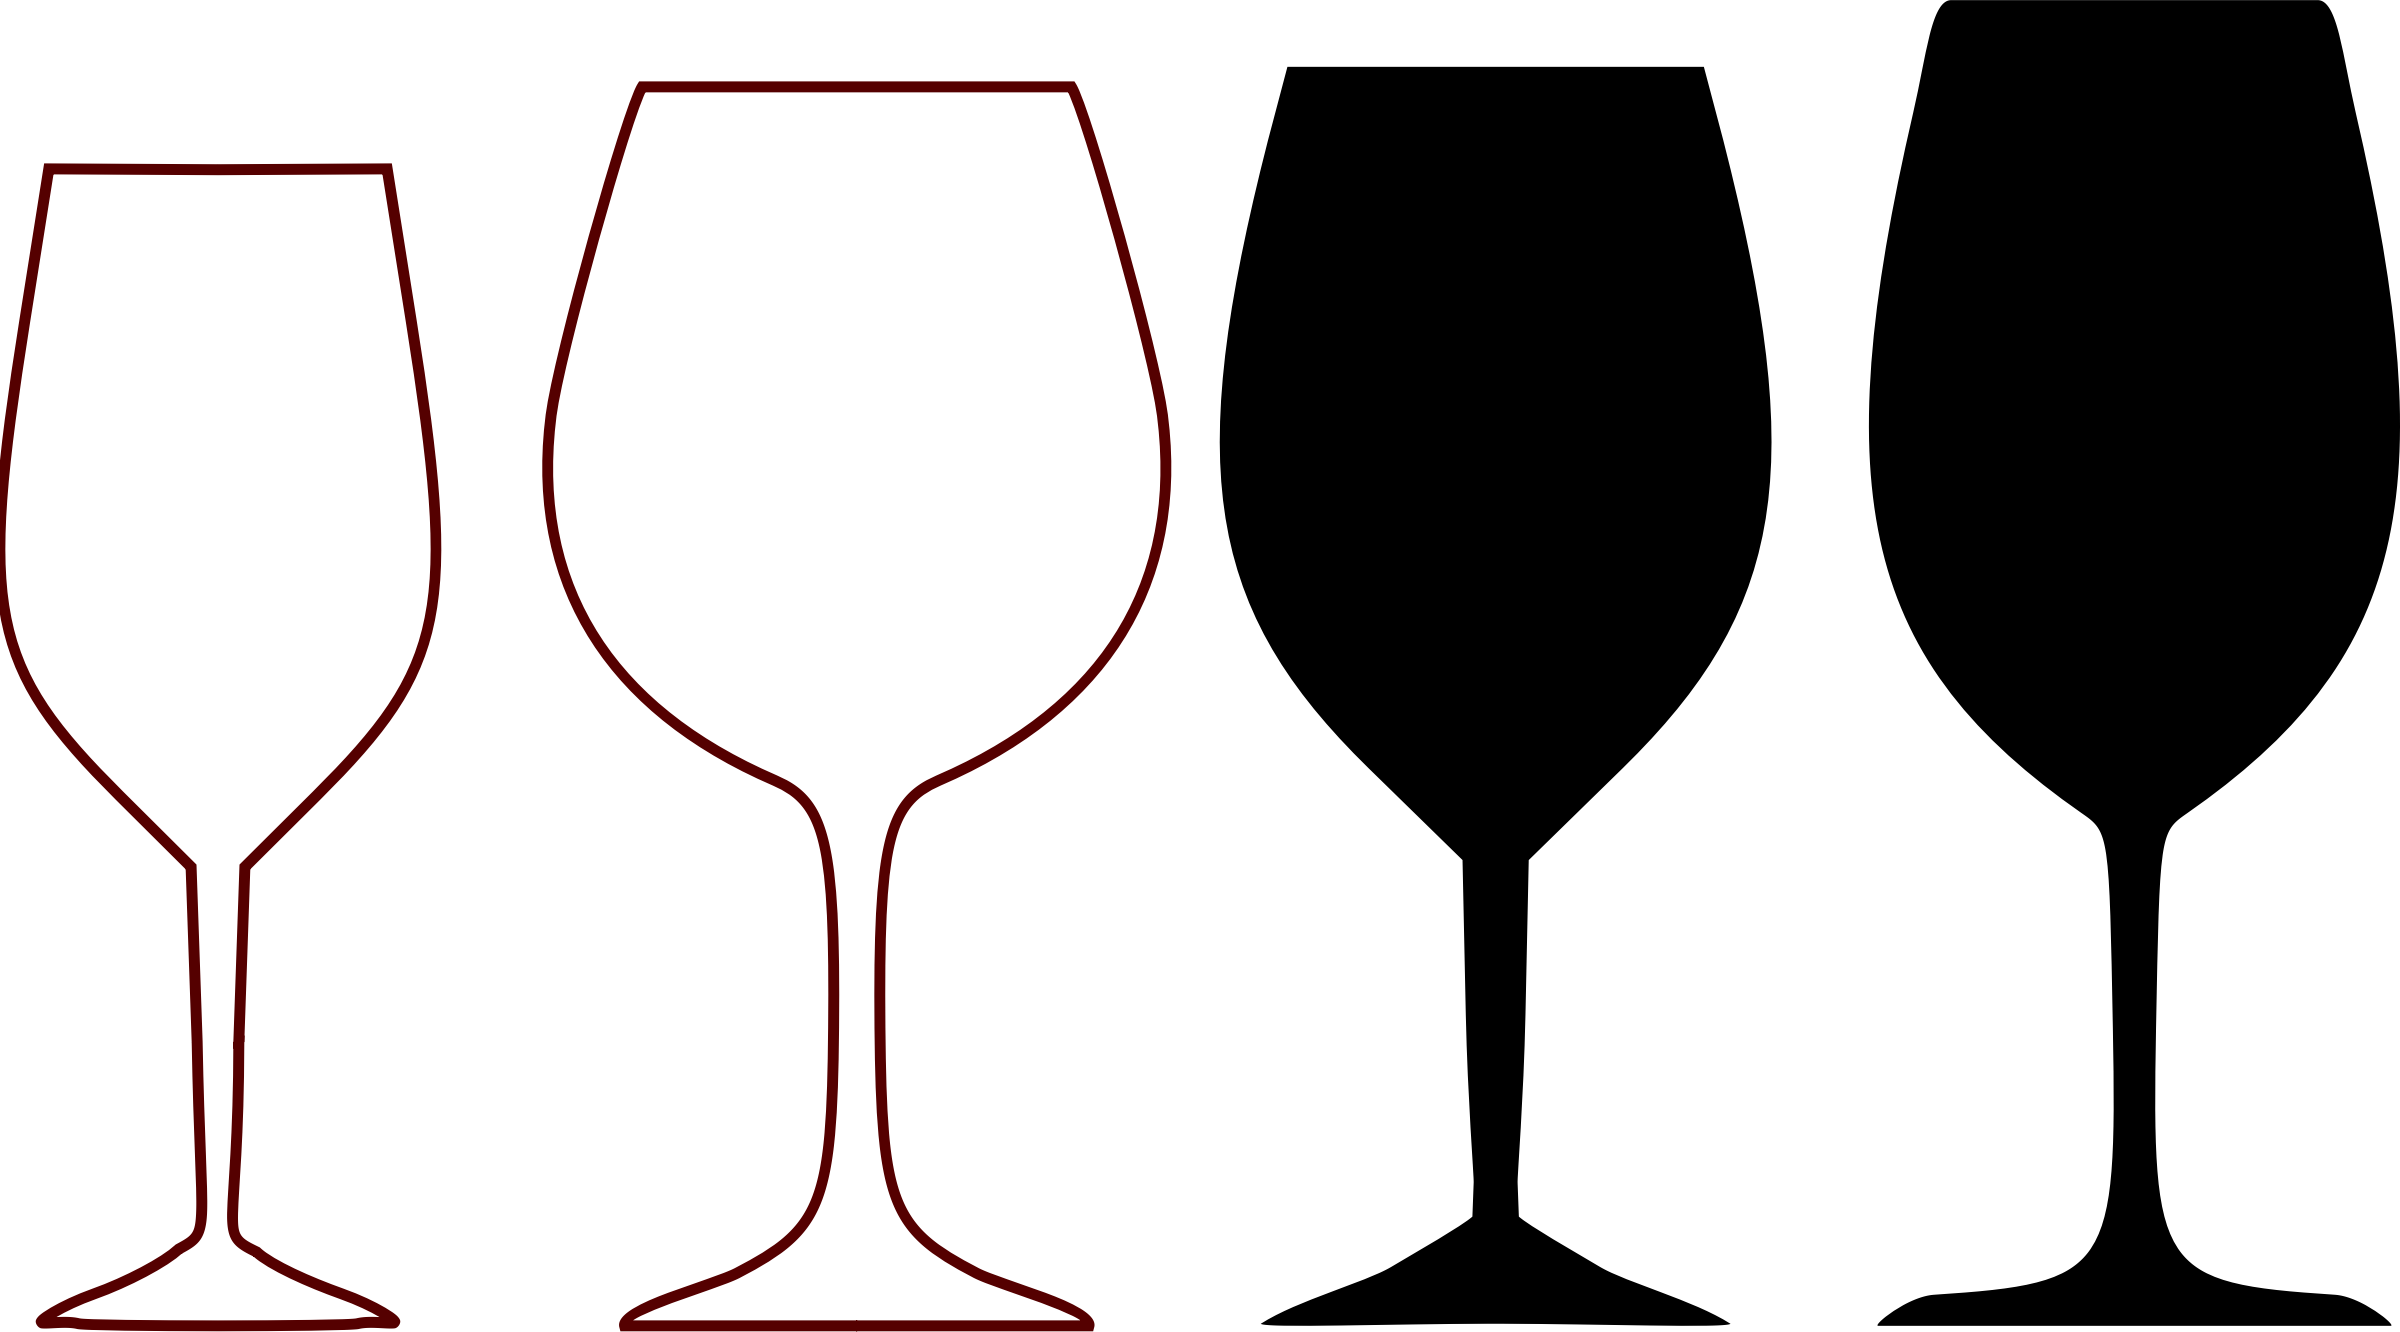 Glasses clipart glass cup. Wine shapes by qpad